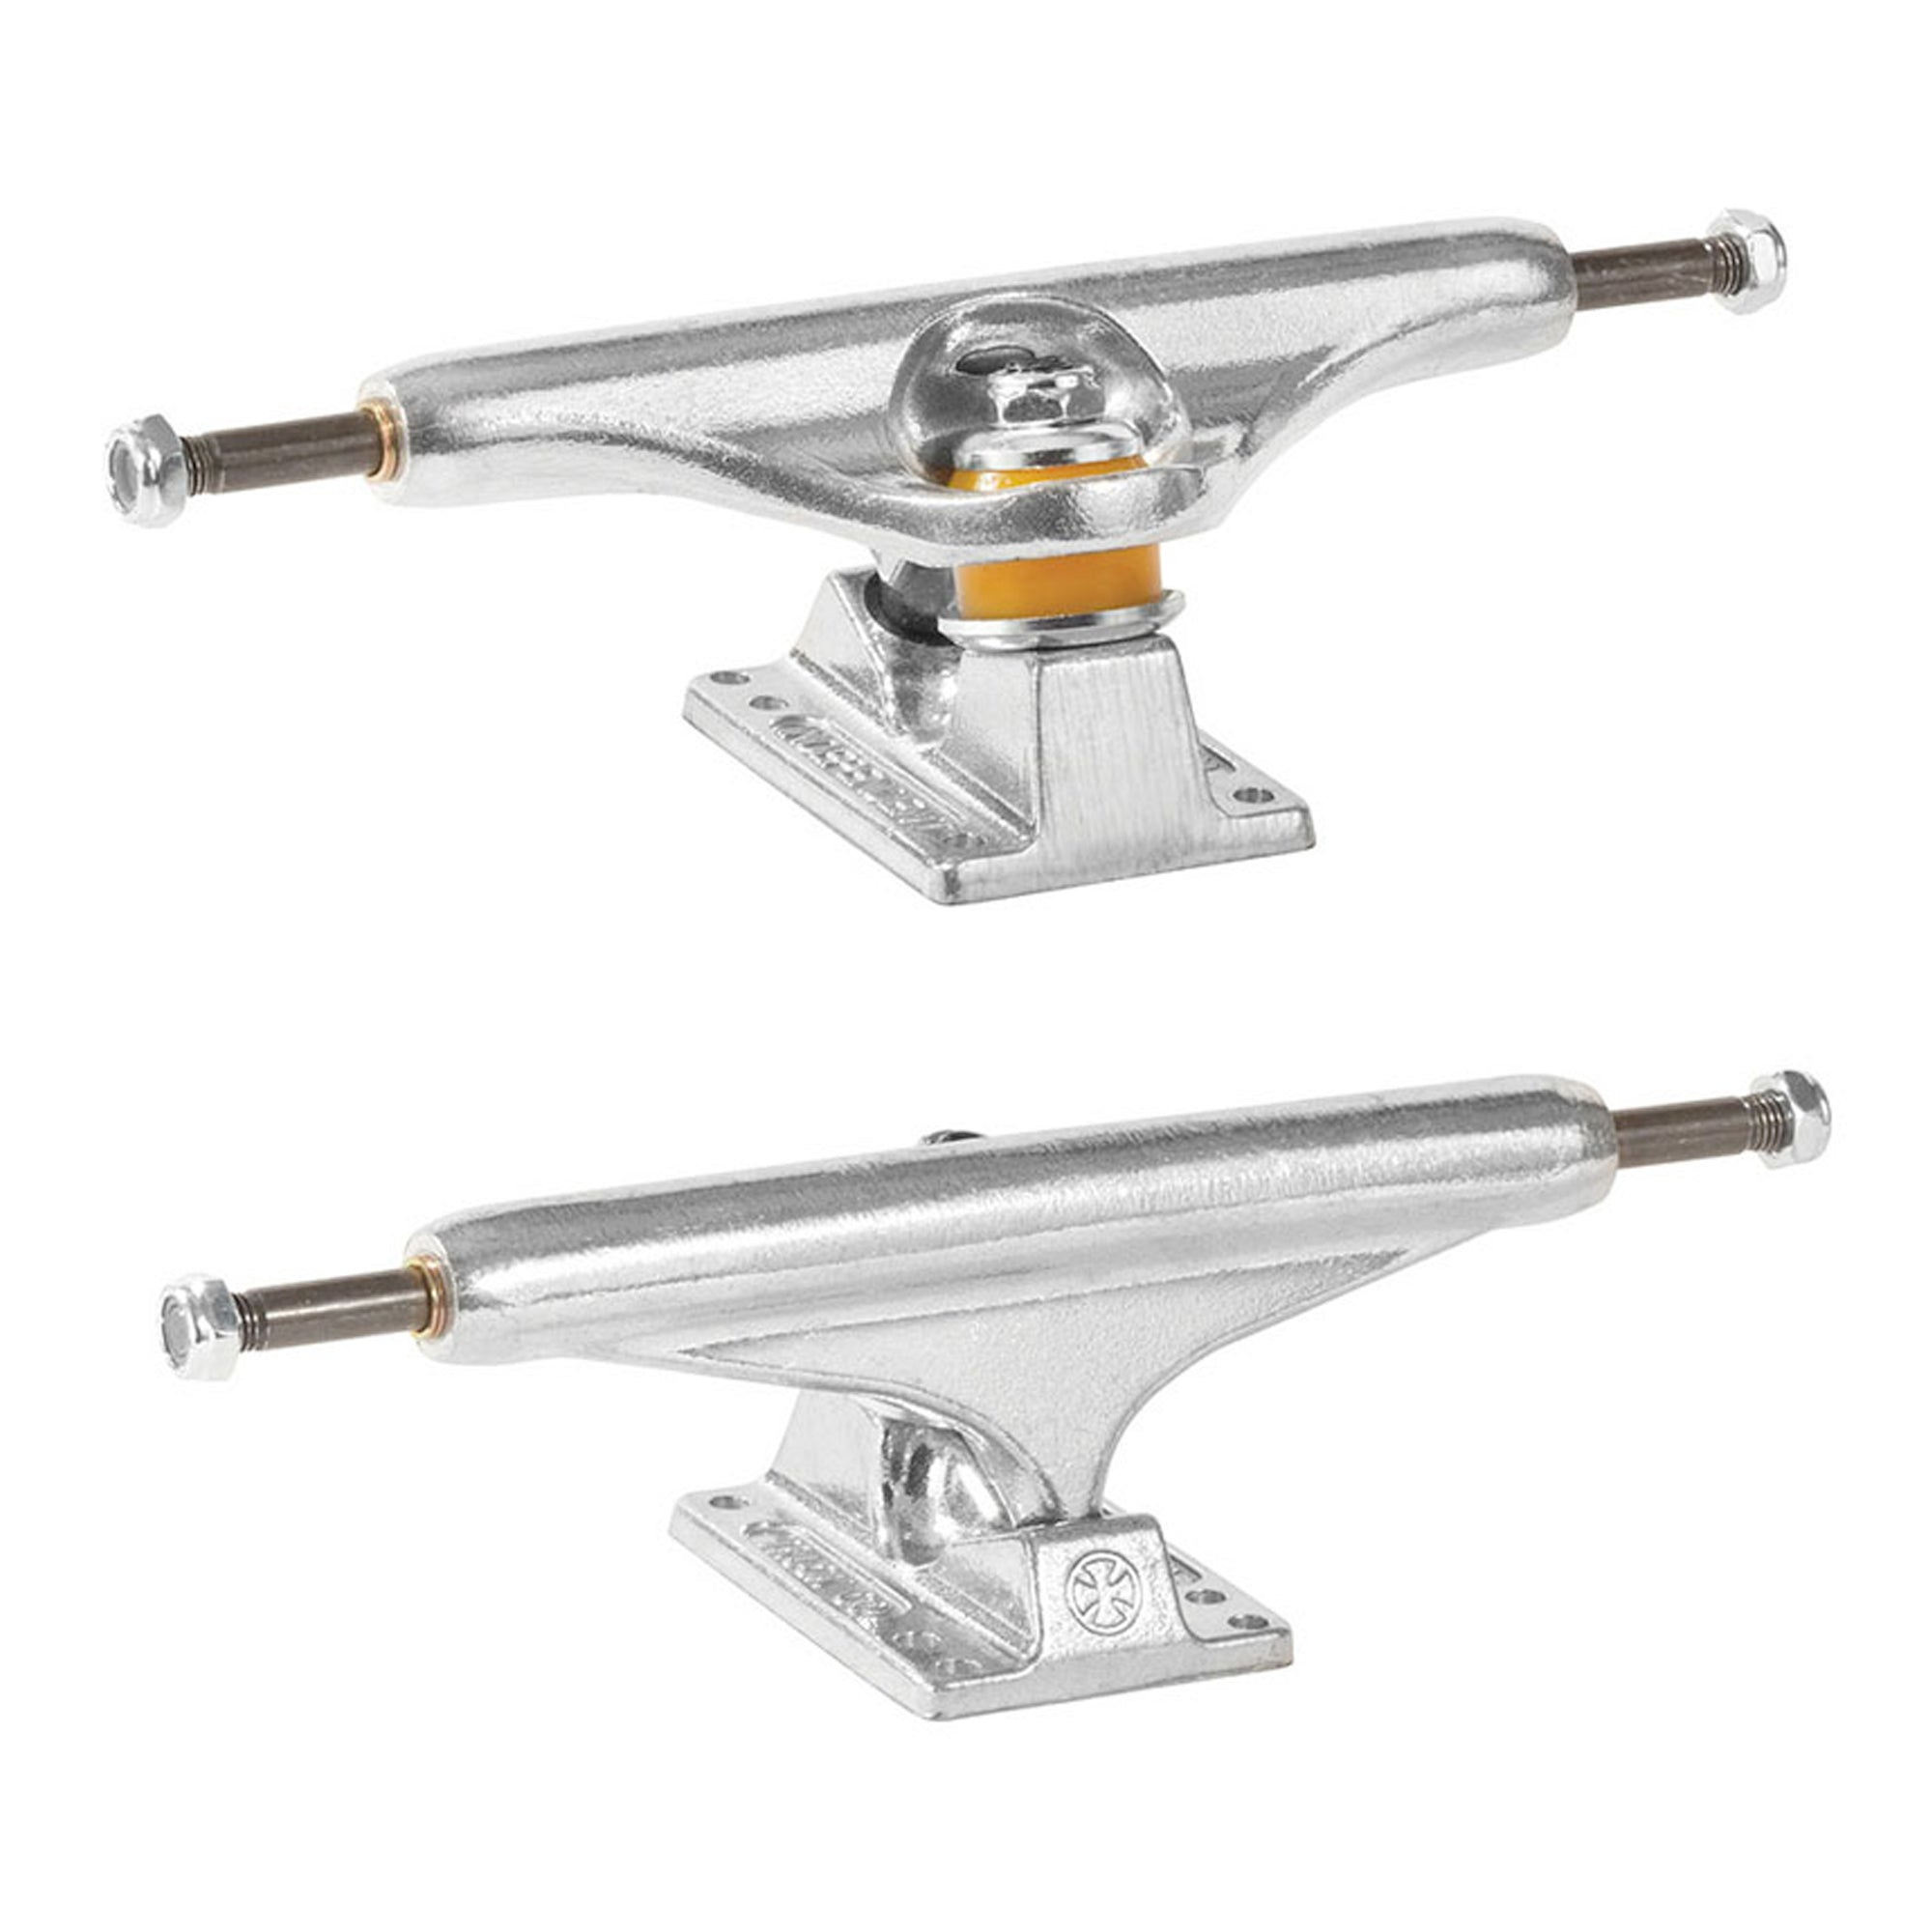 Independent Stage 11 Forged Titanium 169mm Skateboard Trucks